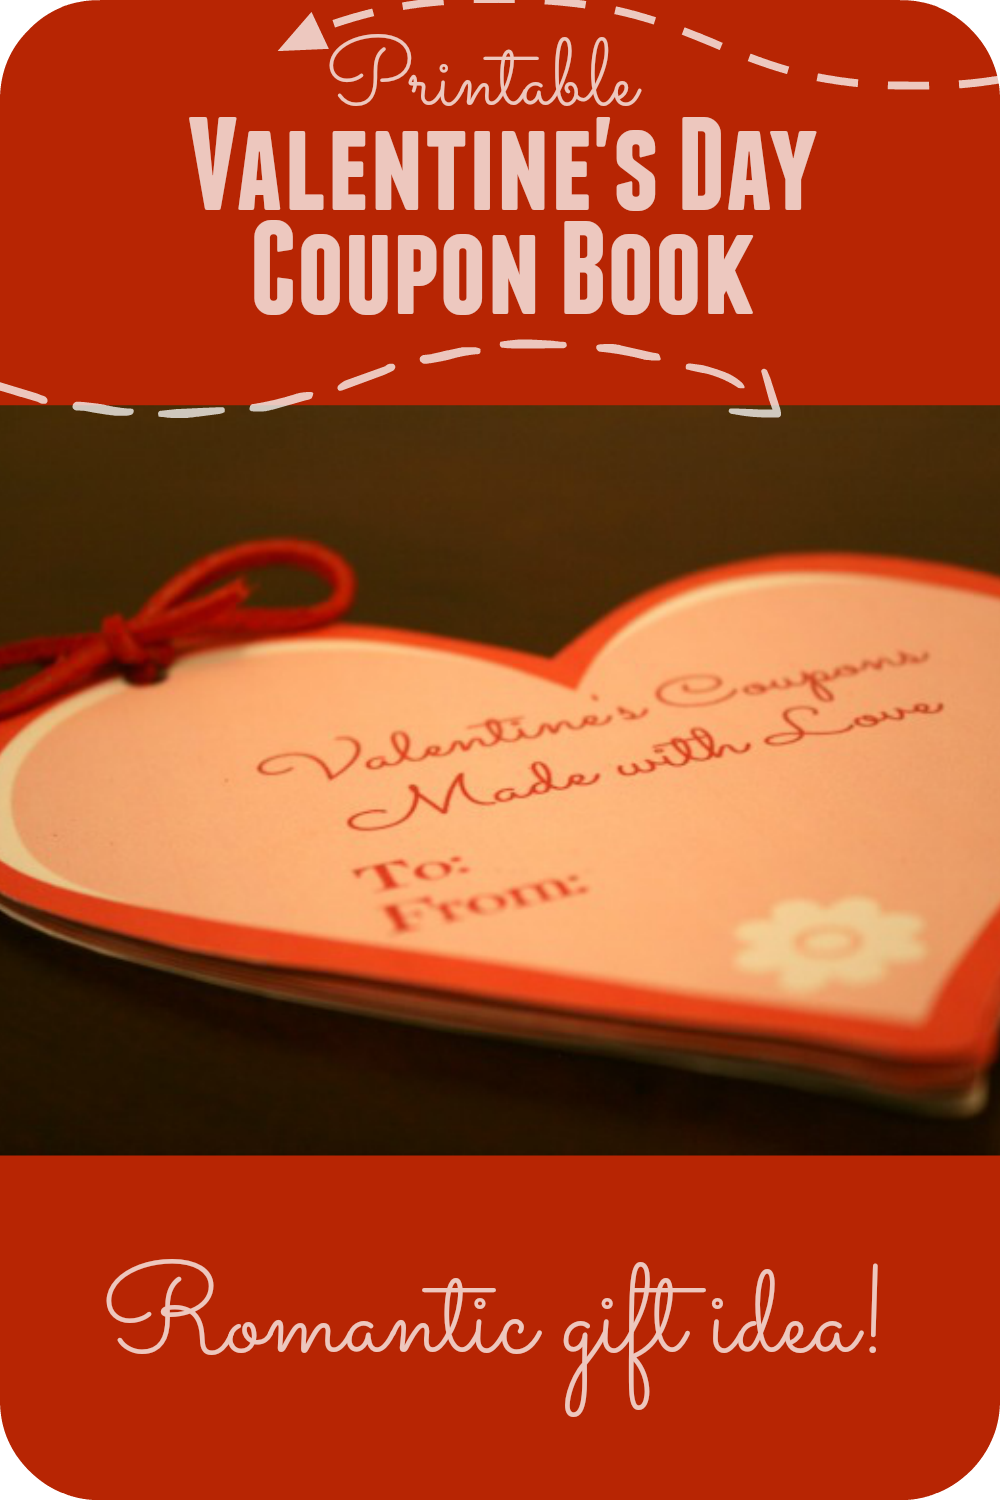 printable valentine s day coupon books are you looking for a r tic and thoughtful gift idea for valentine s day here is